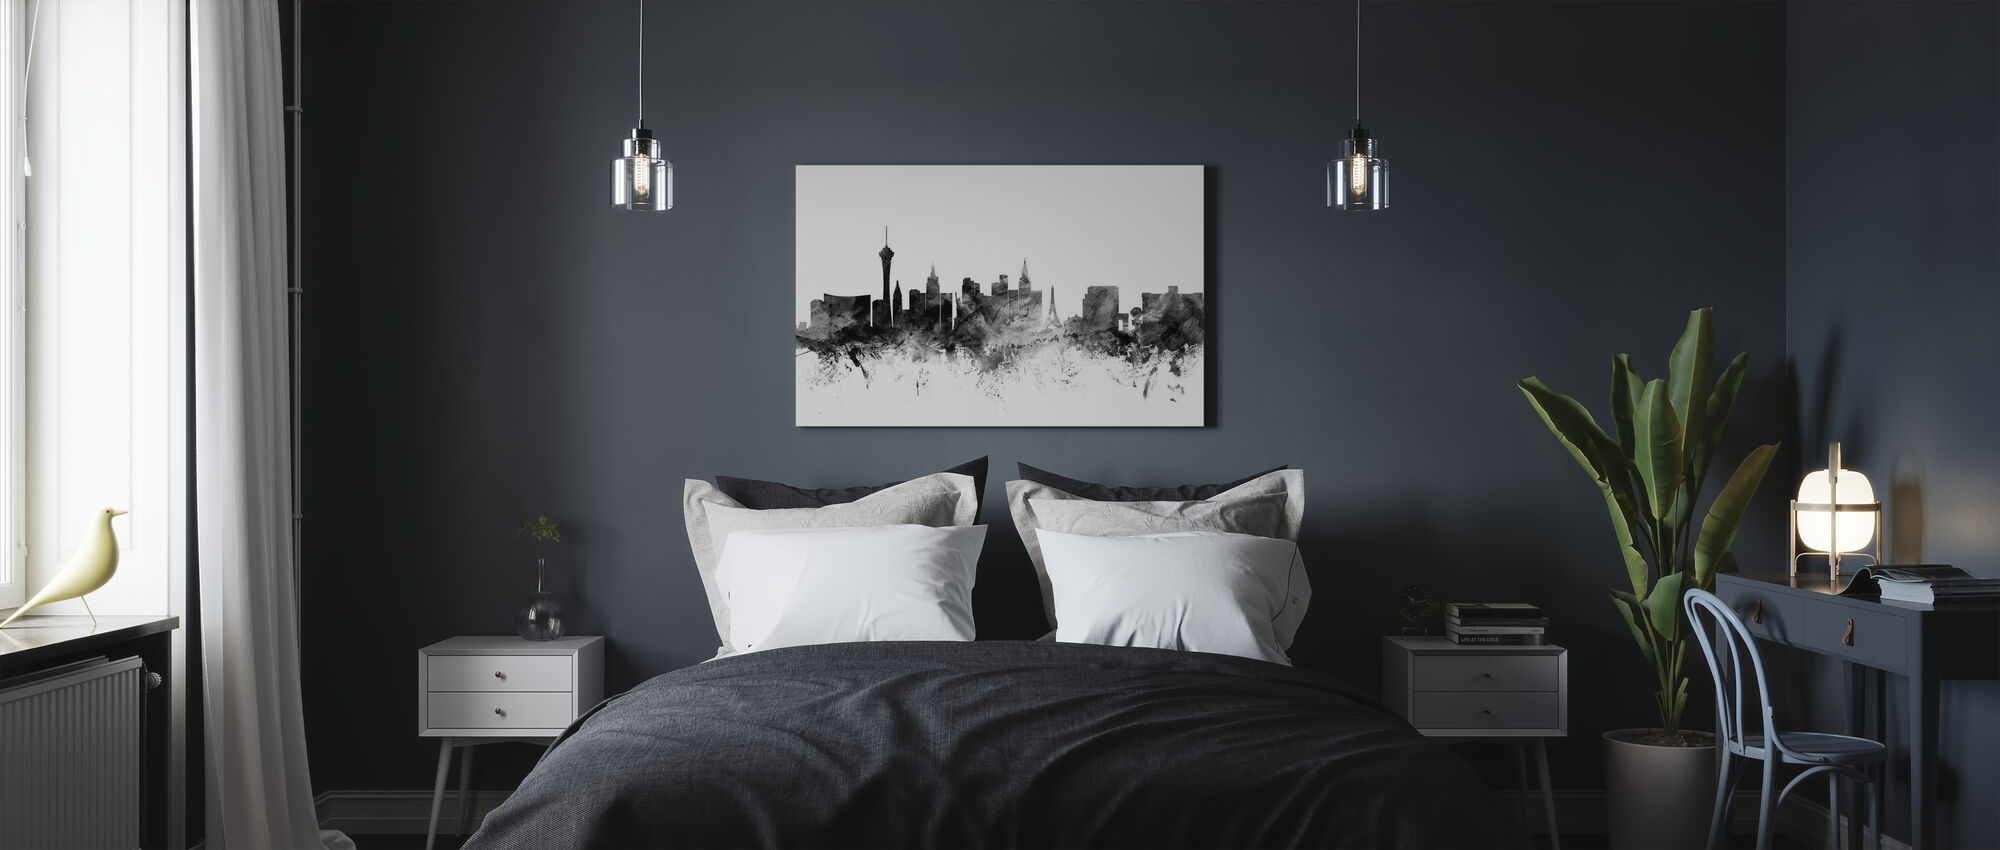 Las Vegas Skyline Black - Canvas print - Bedroom